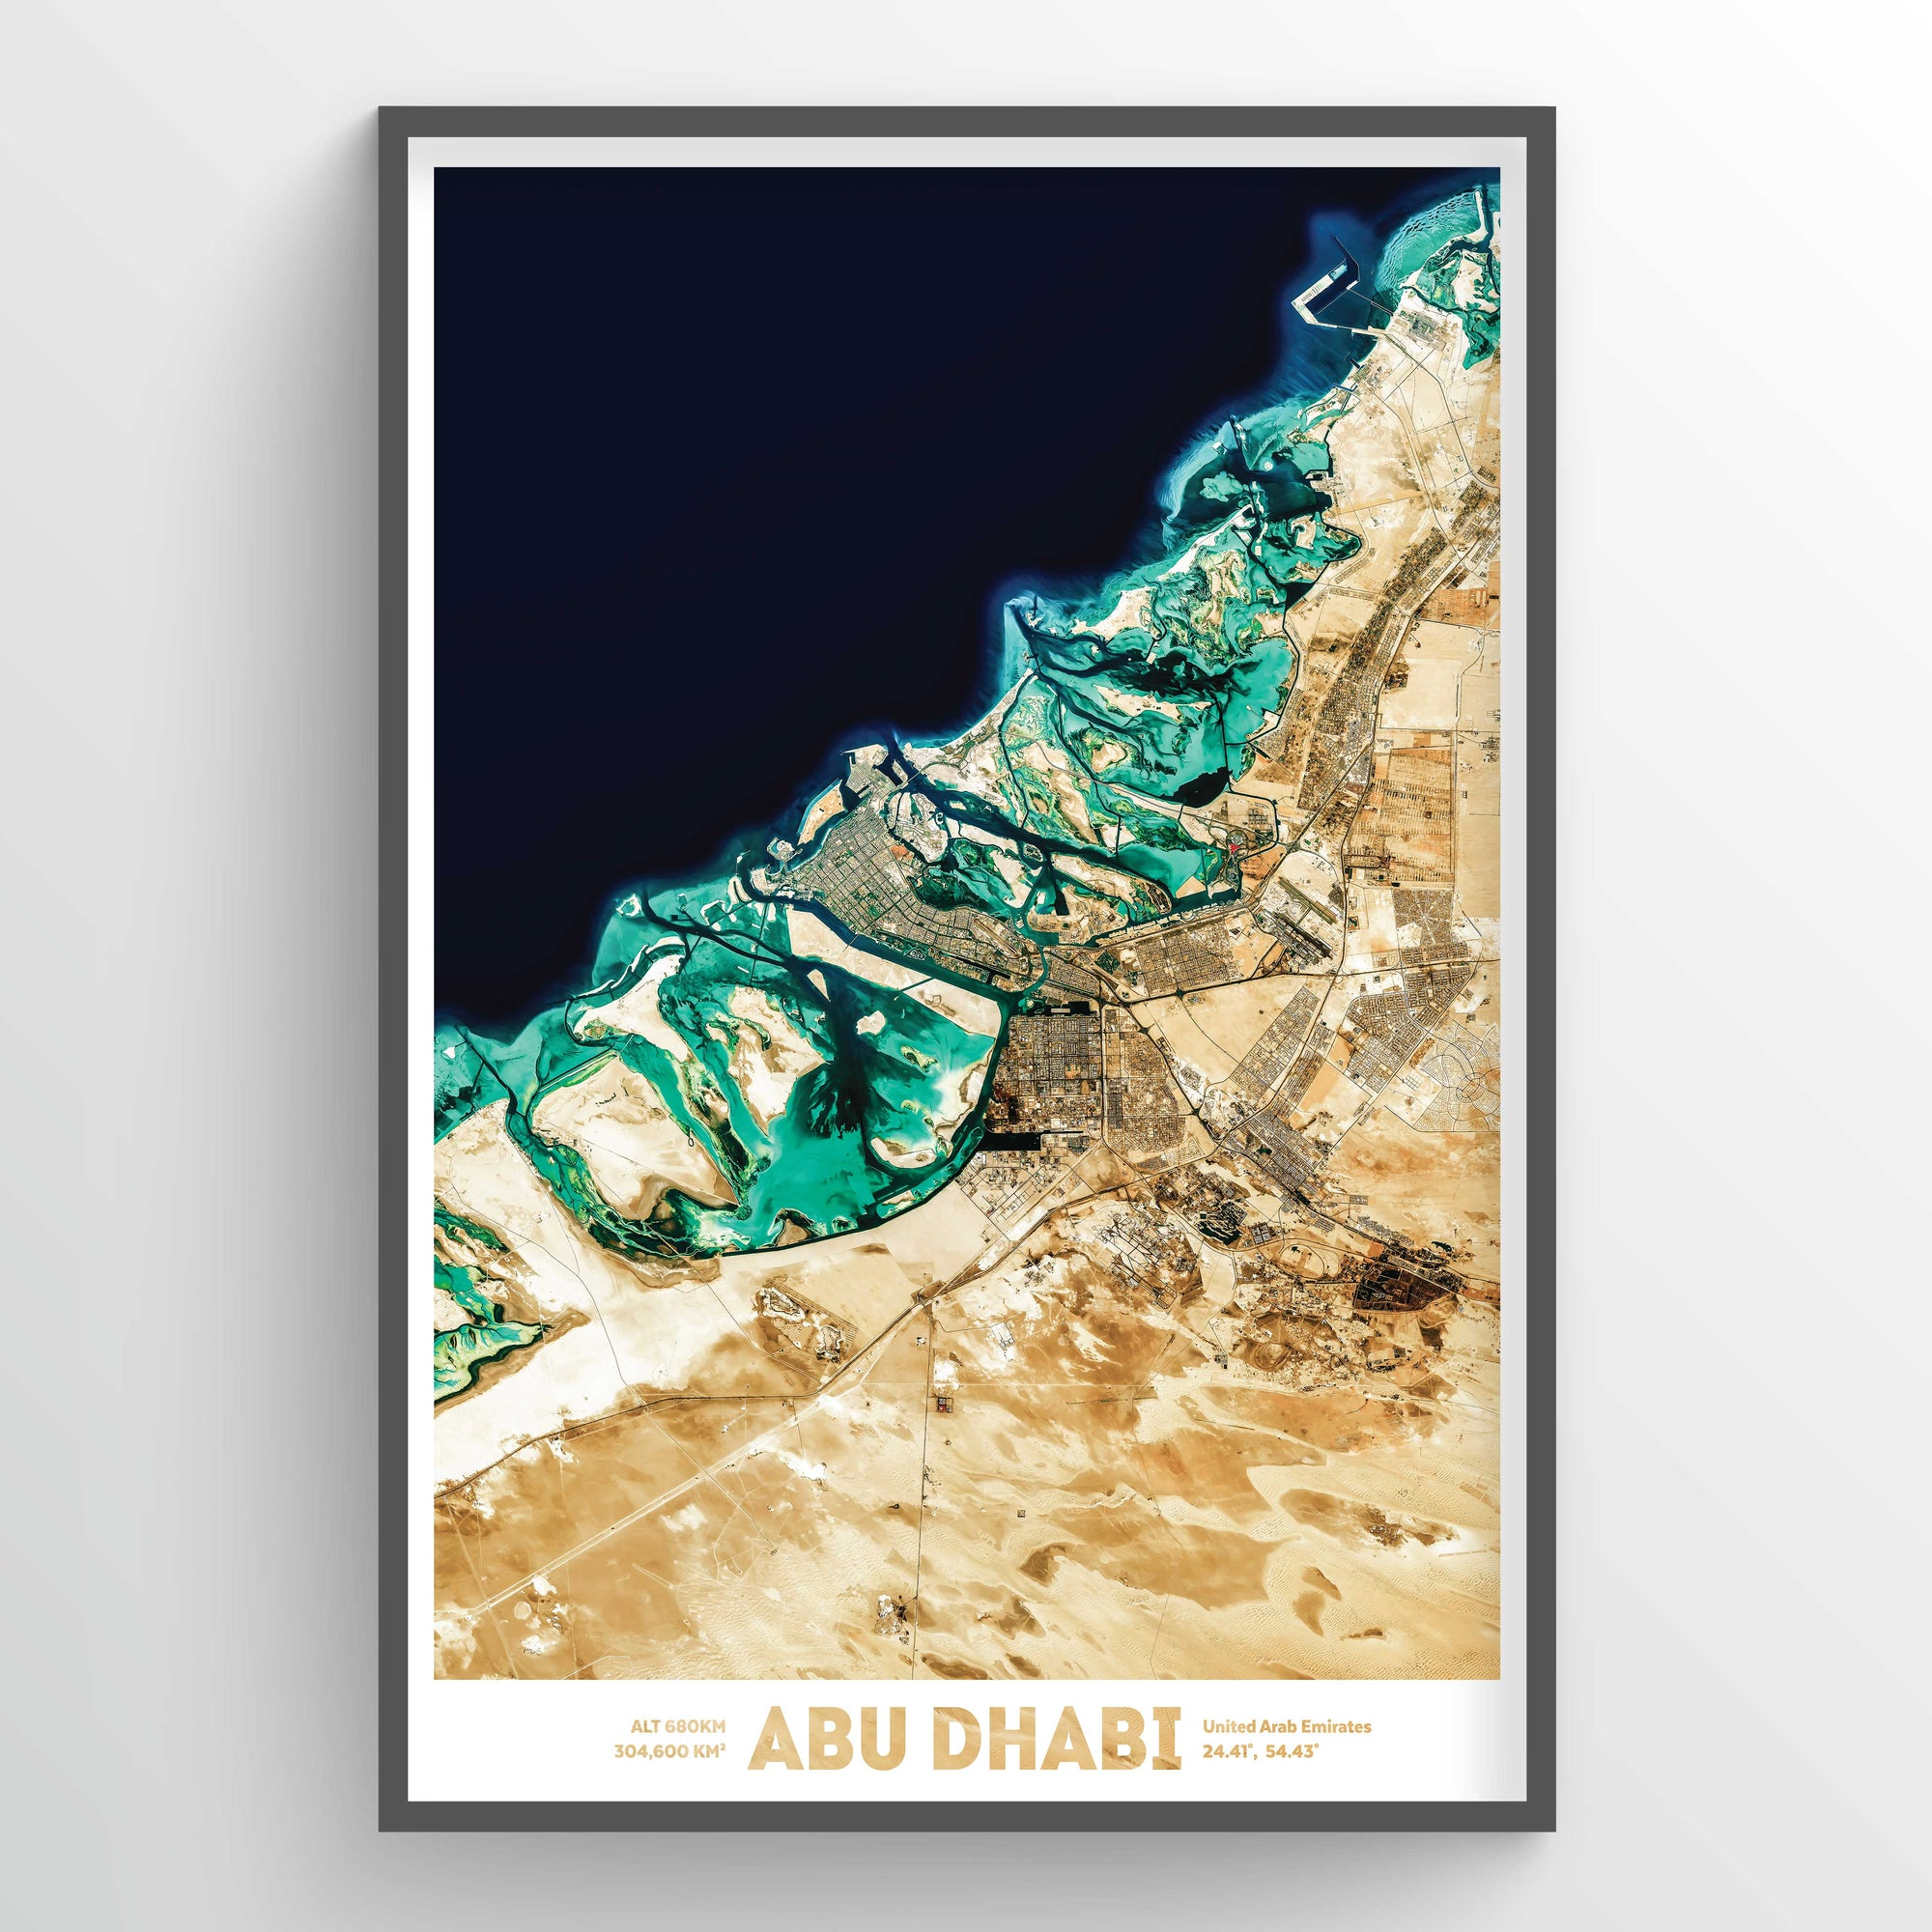 Abu Dhabi Earth Photography - Art Print - Point Two Design